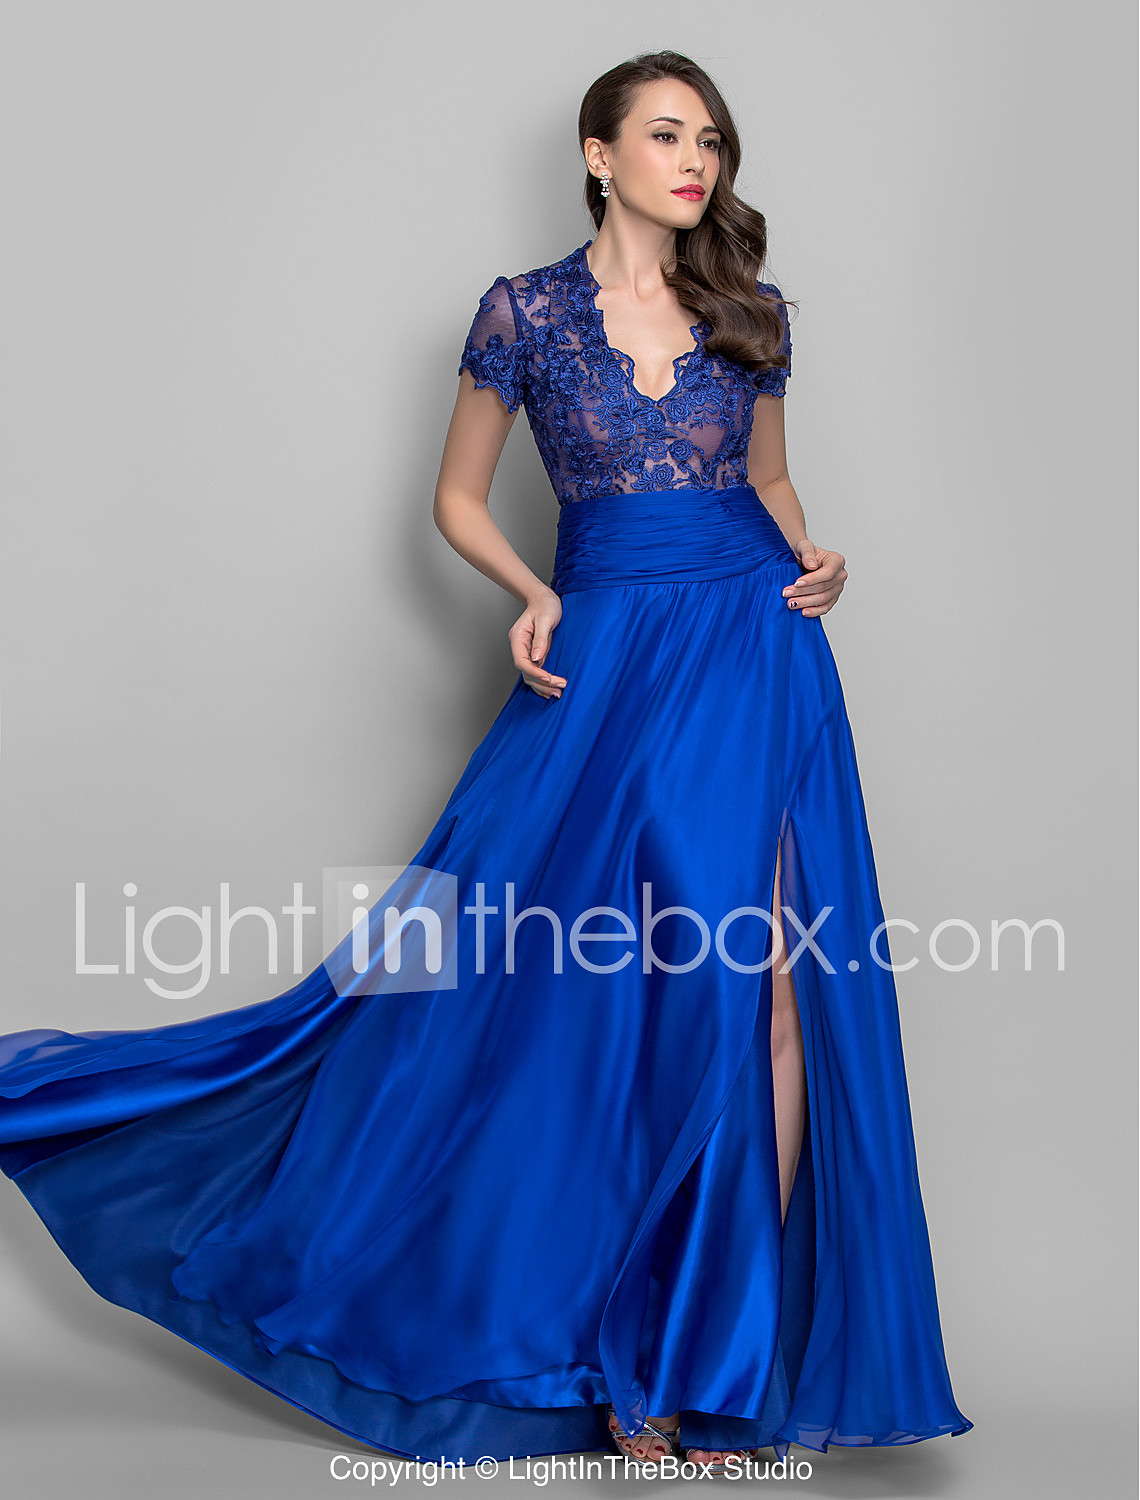 Plus Size Military Ball Gowns _Other dresses_dressesss